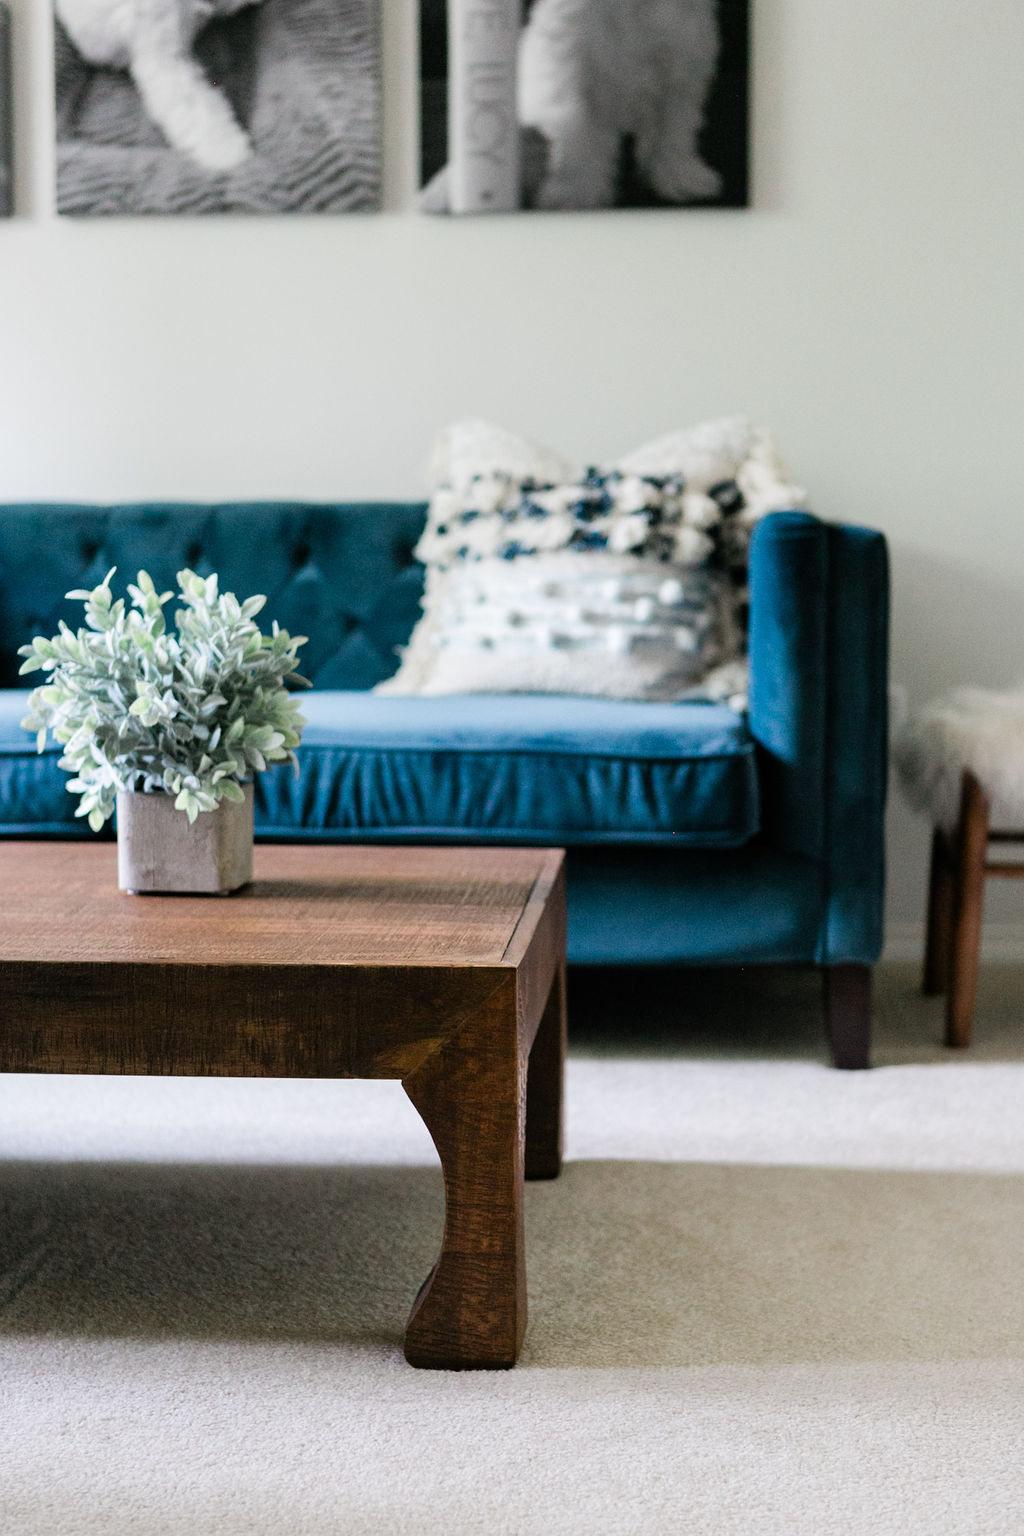 A raw wood coffee coffee table, a tufted felt navy blue sofa and a throw pillow with tassels.